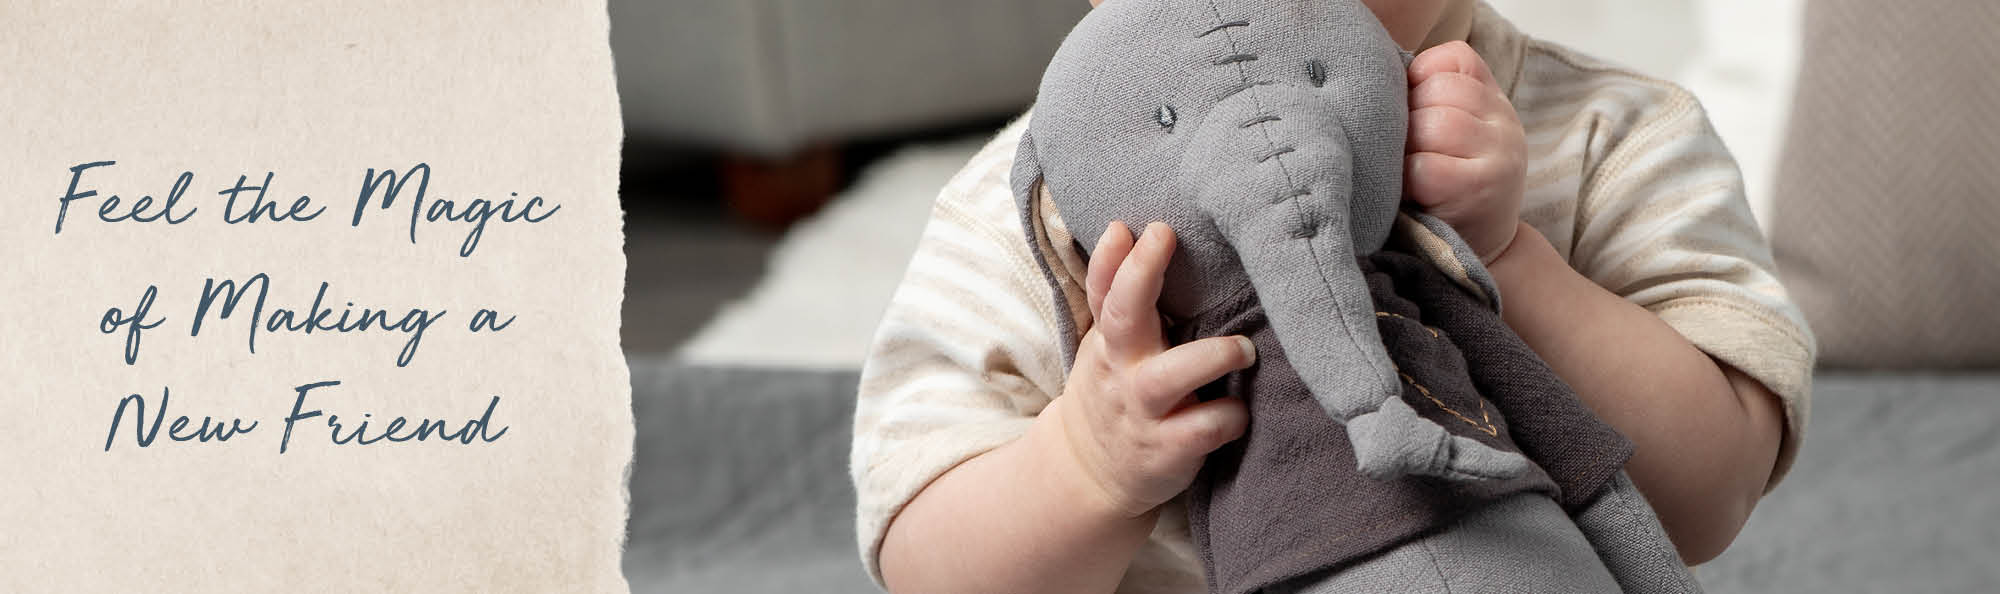 Feel the magic of creating a new friend. Baby holding a stuffed elephant with hand-stitched details.